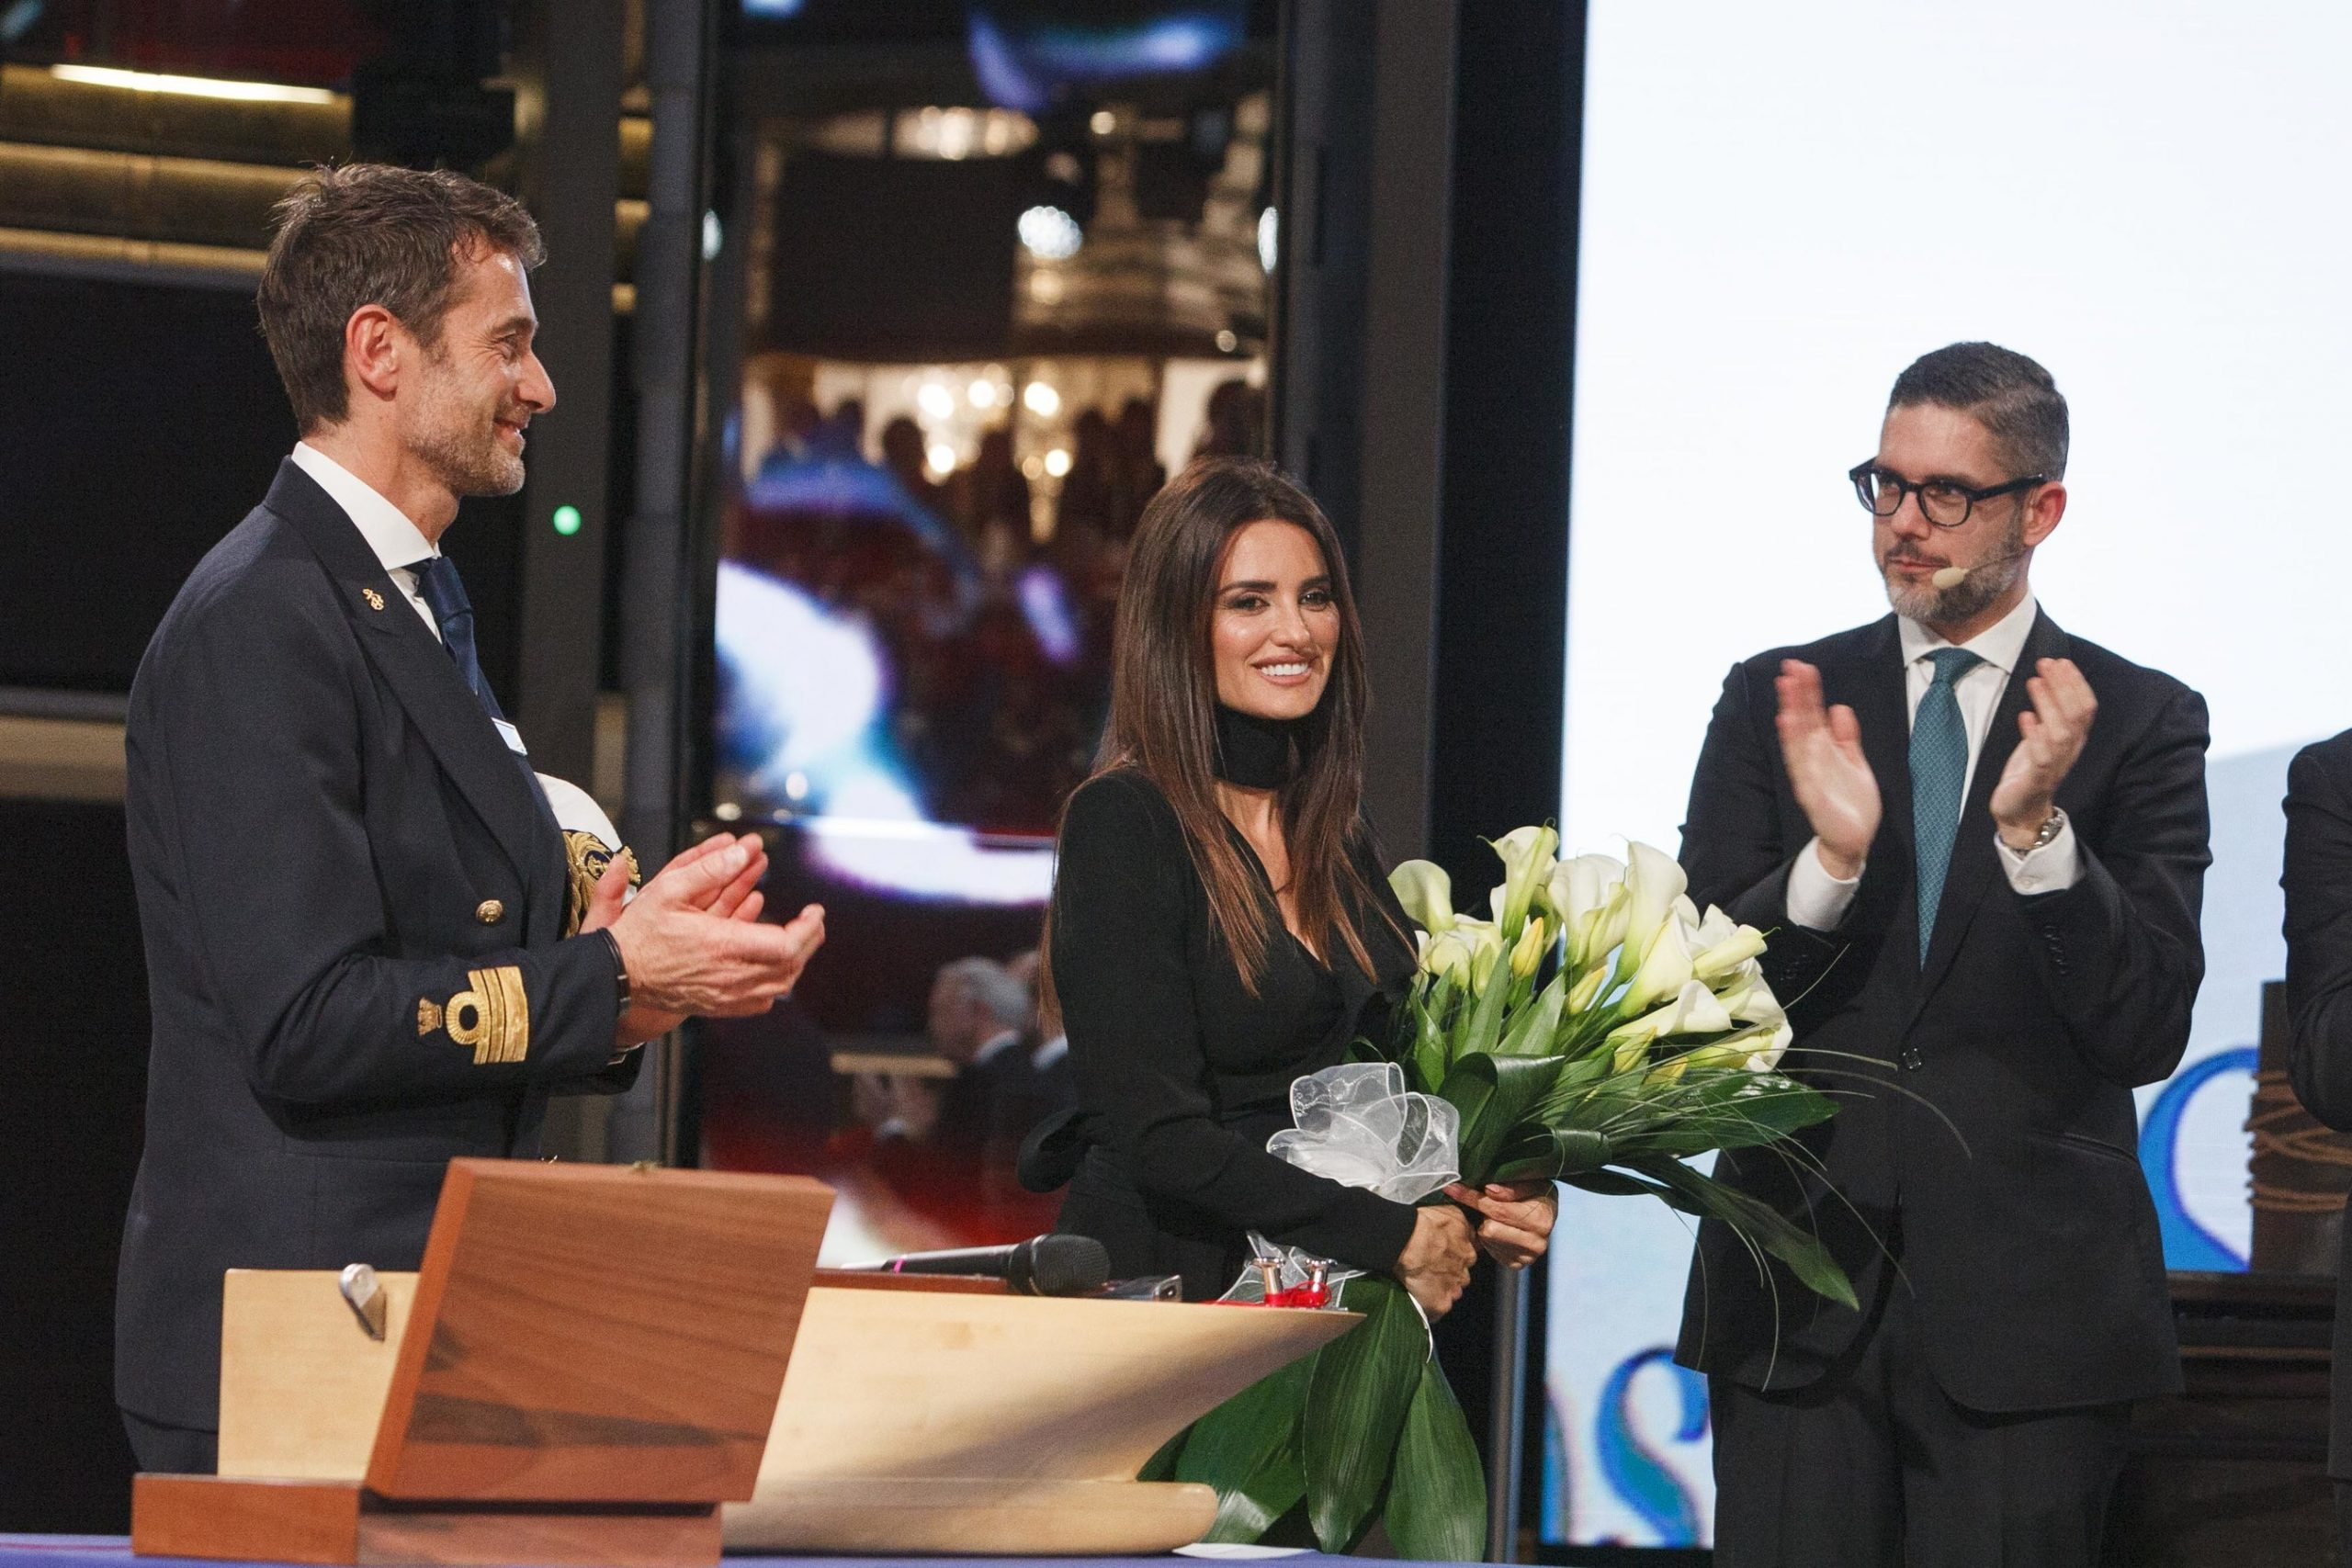 Penélope Cruz (center) serves as godmother for Costa Cruises' newest liquefied natural gas powered ship, Costa Smeralda, at the ship's naming ceremony in Savona.